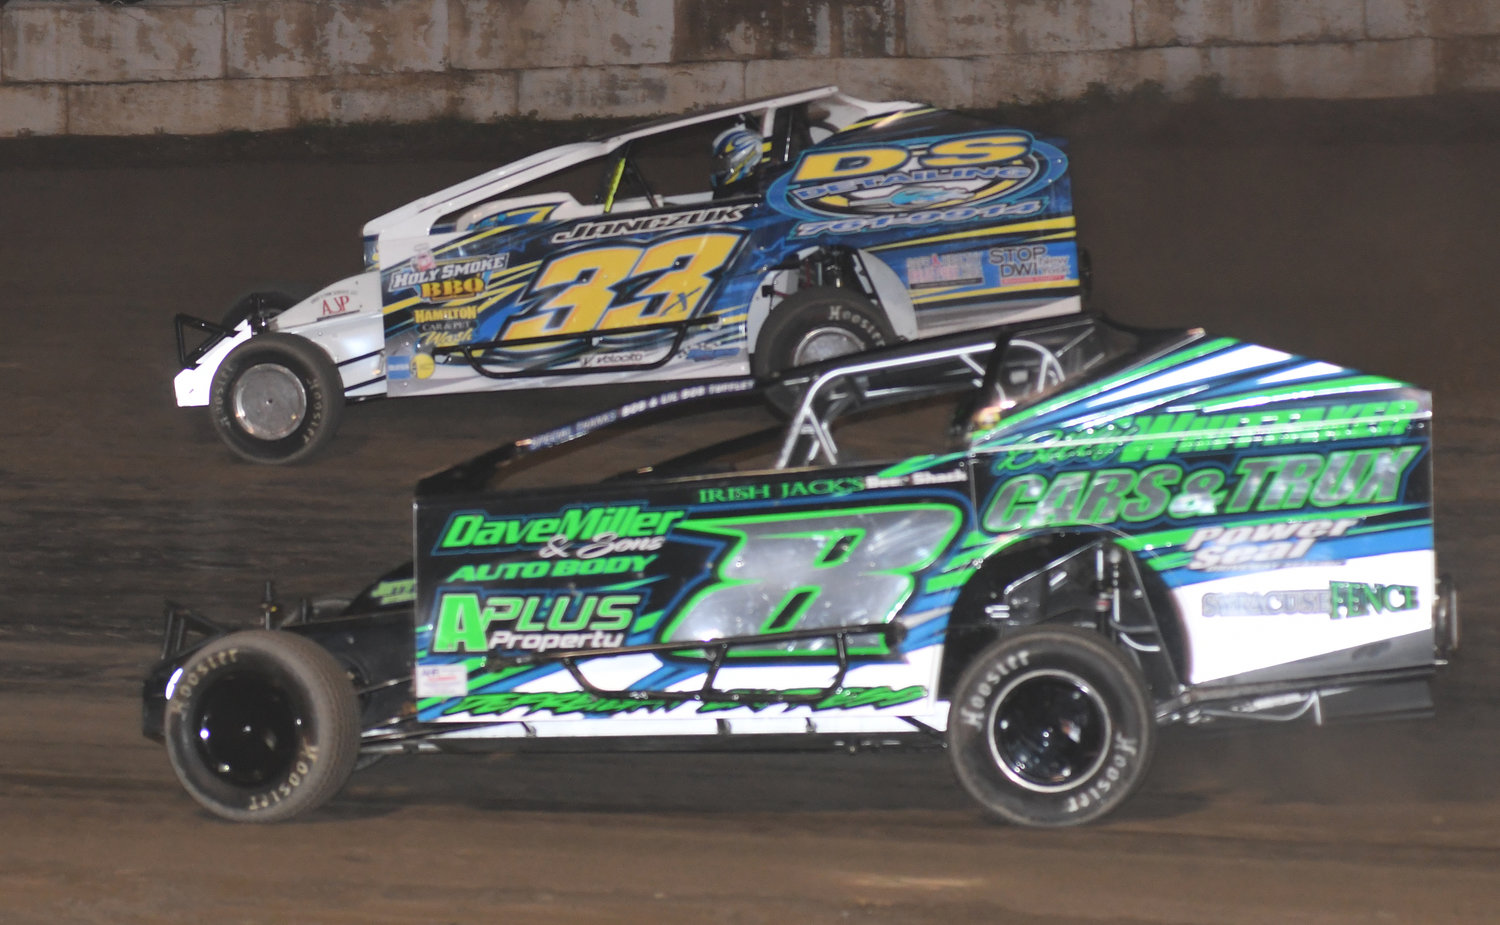 HIGH SIDE — Durhamville's Matt Janczuk, 33x, finds the fast way around Fulton Speedway last Saturday night by choosing the high side. Janczuk went on to win the feature with Alan Fink, 8, coming home second.